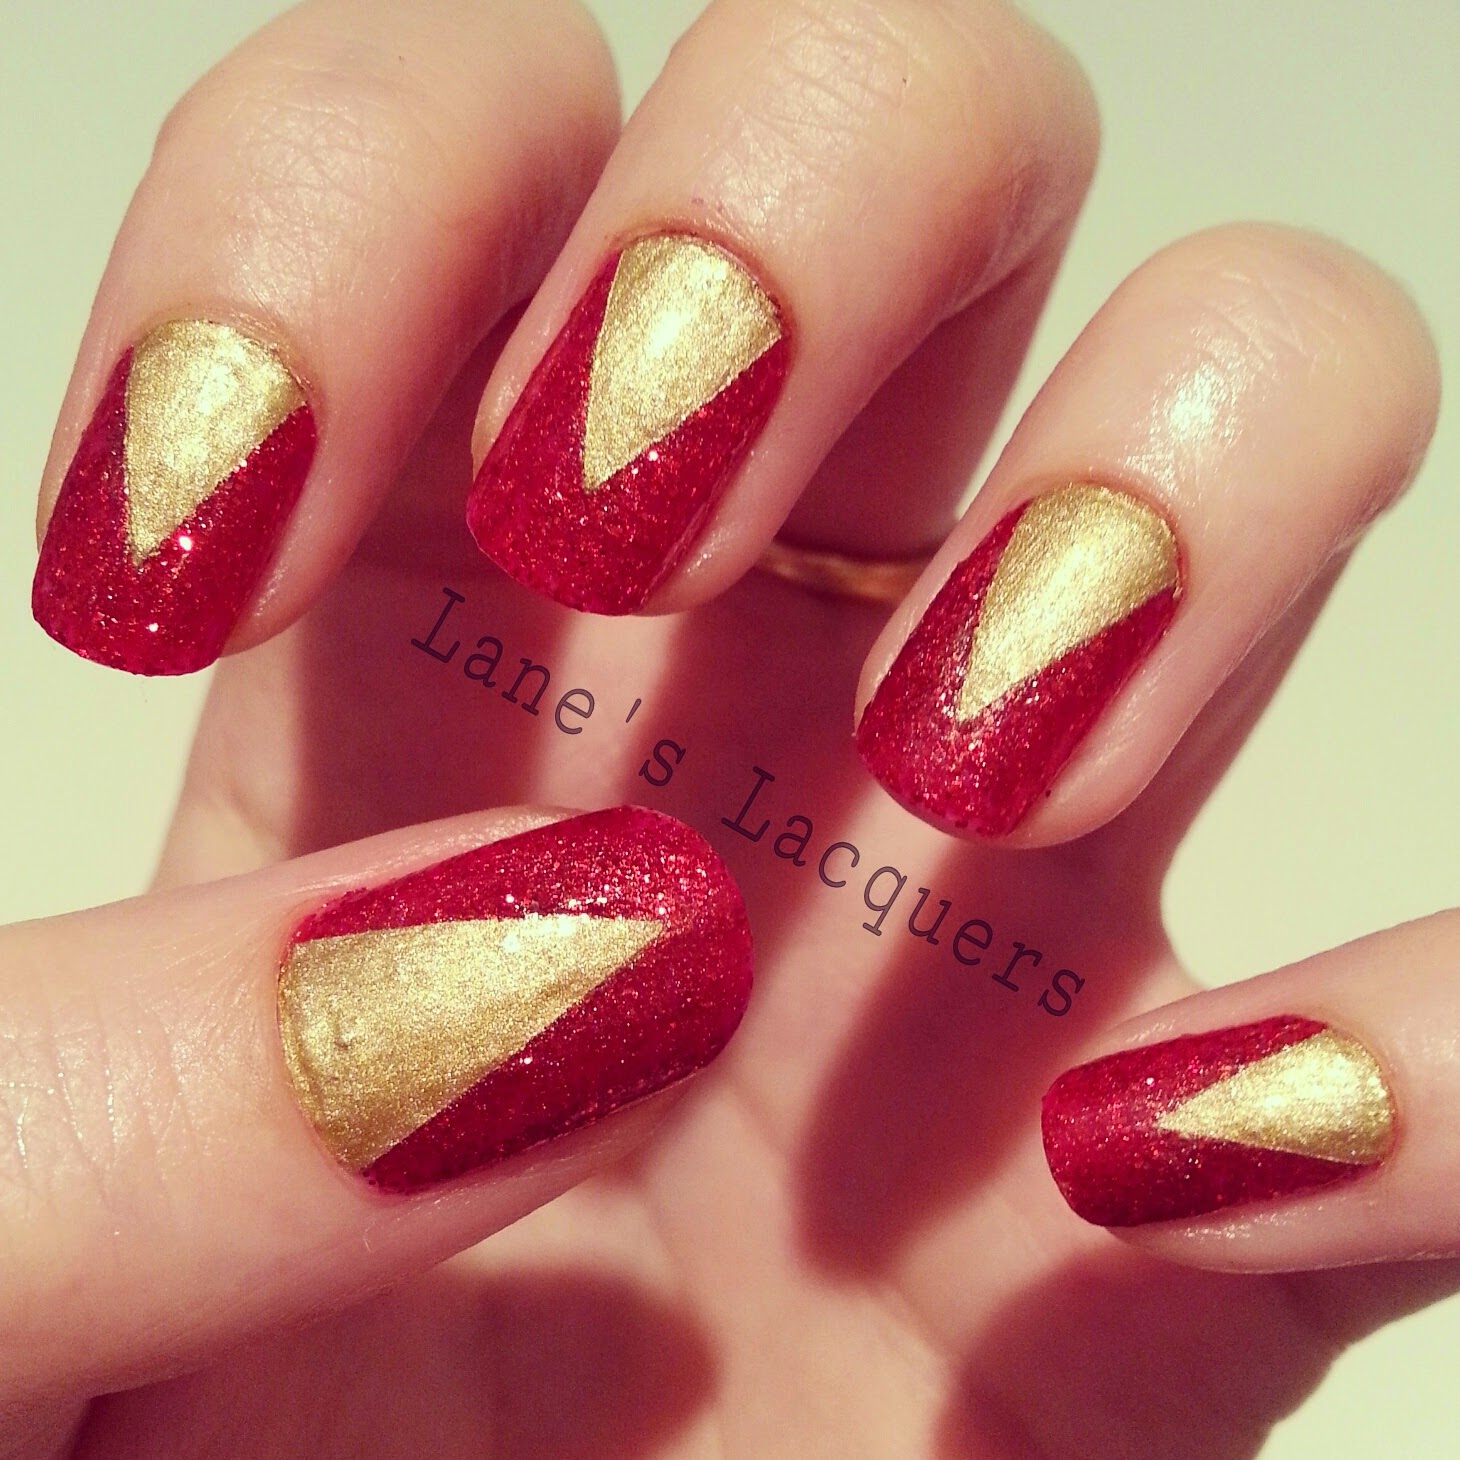 52wpnmc-nails-inc-red-glitter-gold-chevron-nail-art